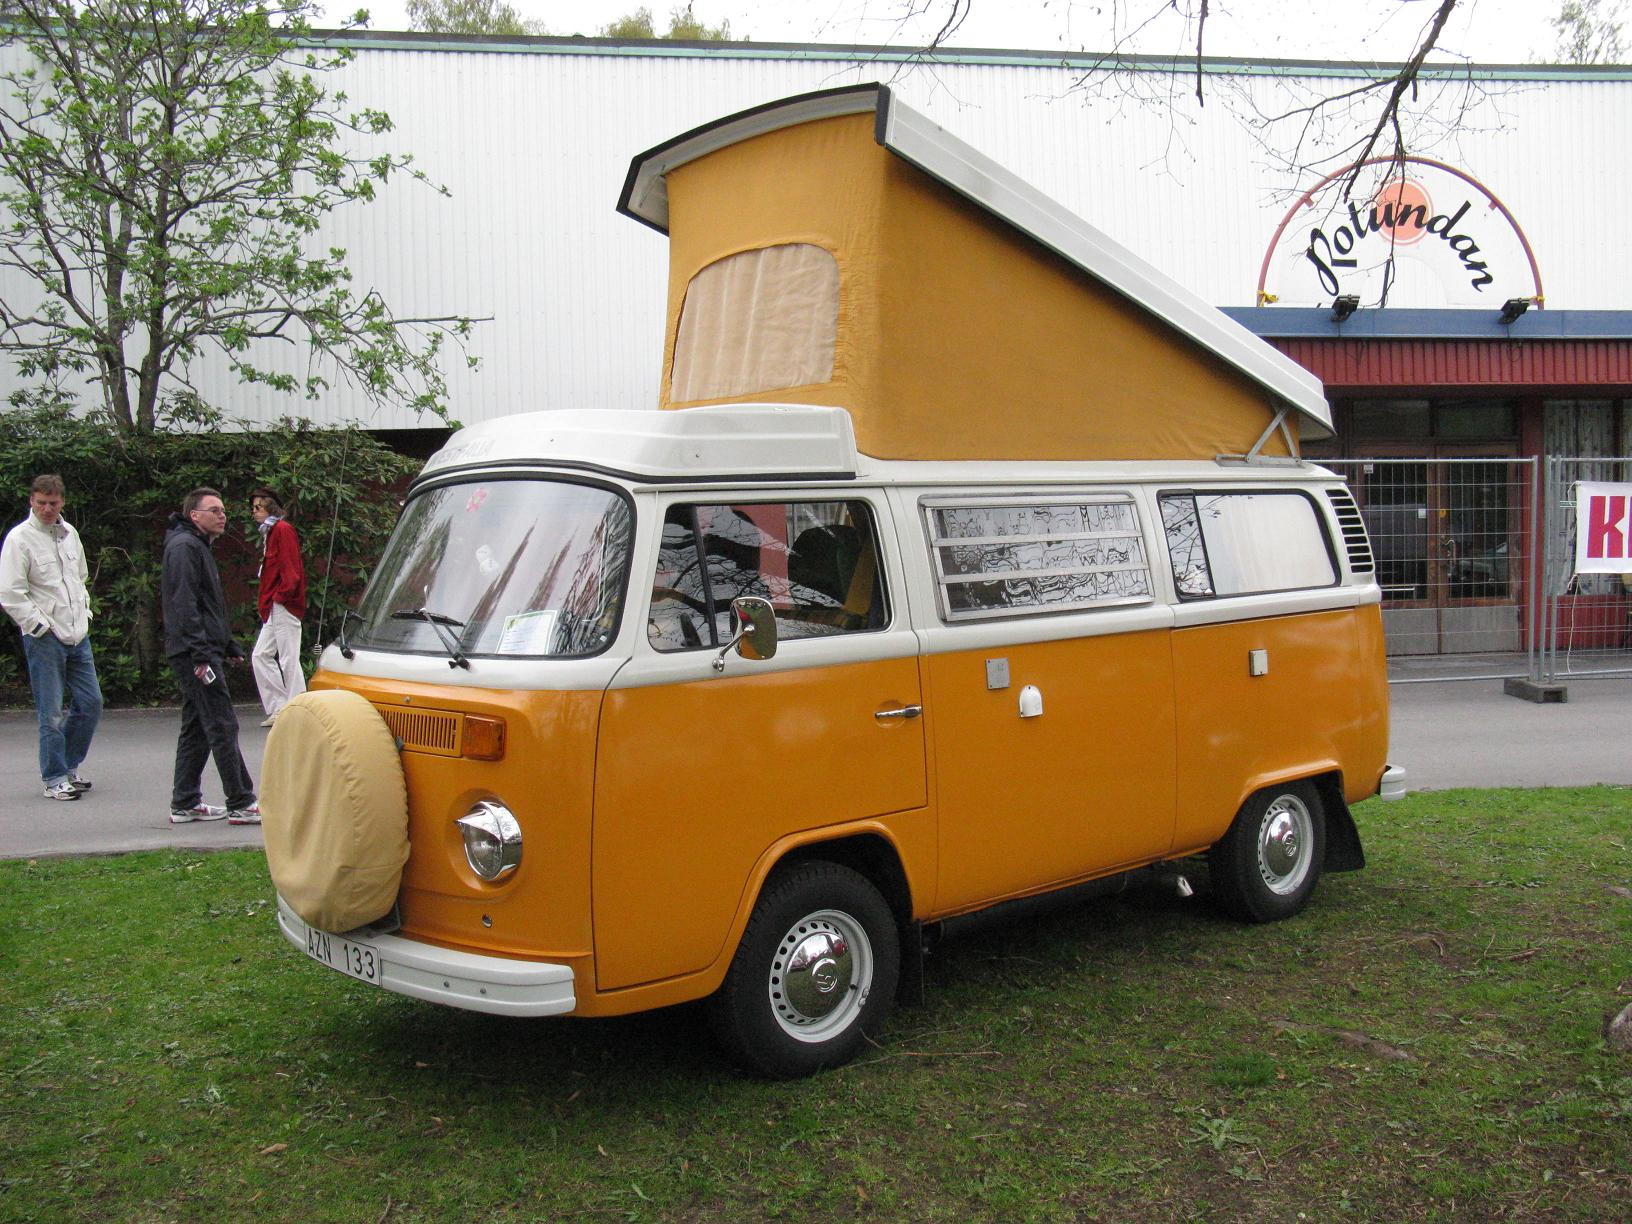 may fullscreen thesamba forum bus split freedom viewtopic size camper vw in been view click to image com volkswagen have reduced topic